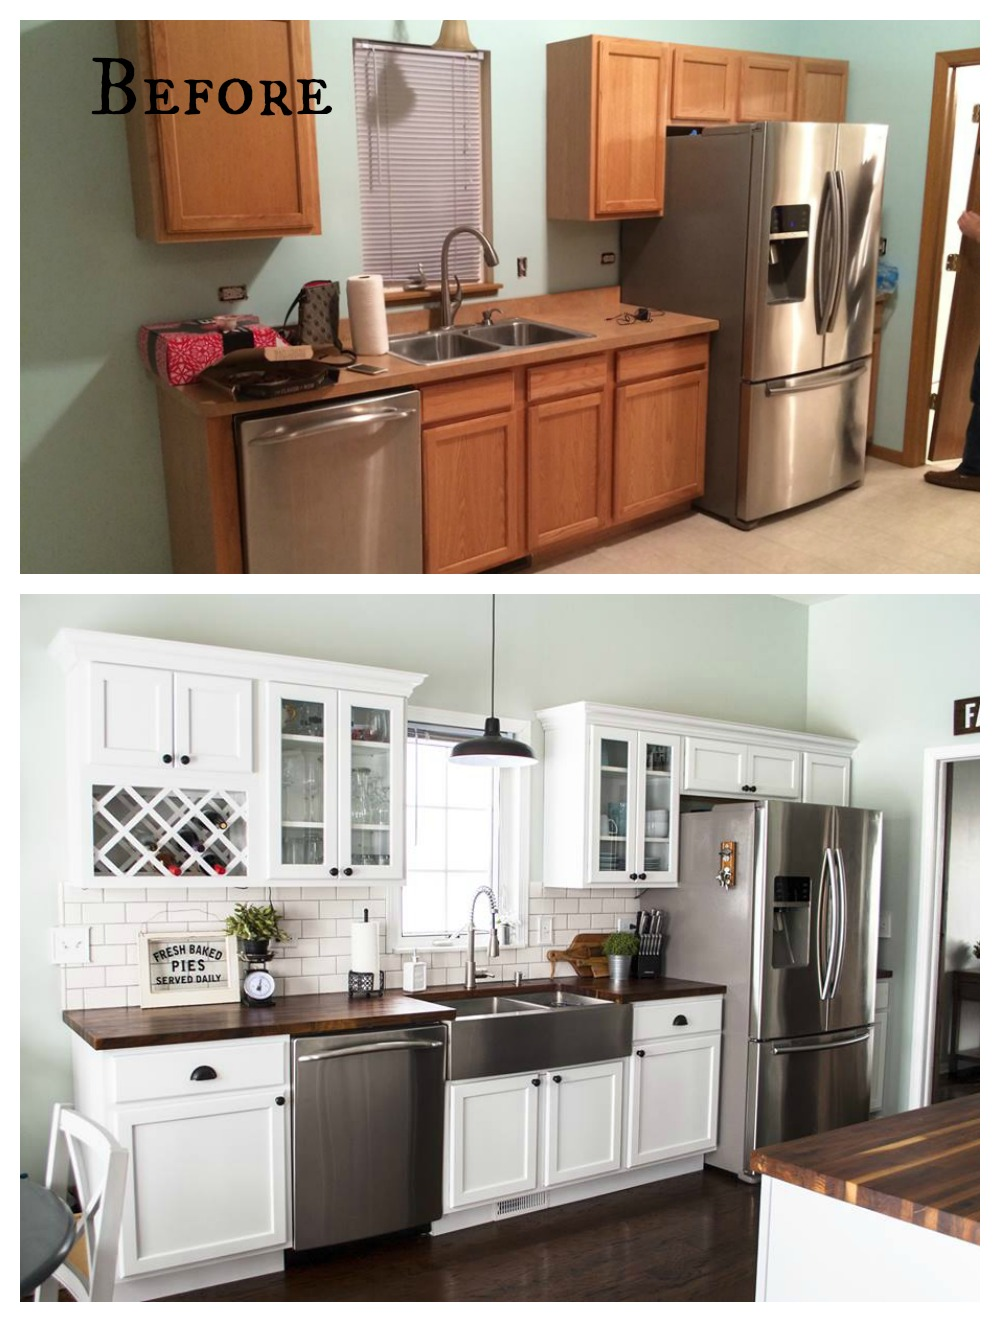 27 Inspiring Kitchen Makeovers- Before and After - Nesting ...